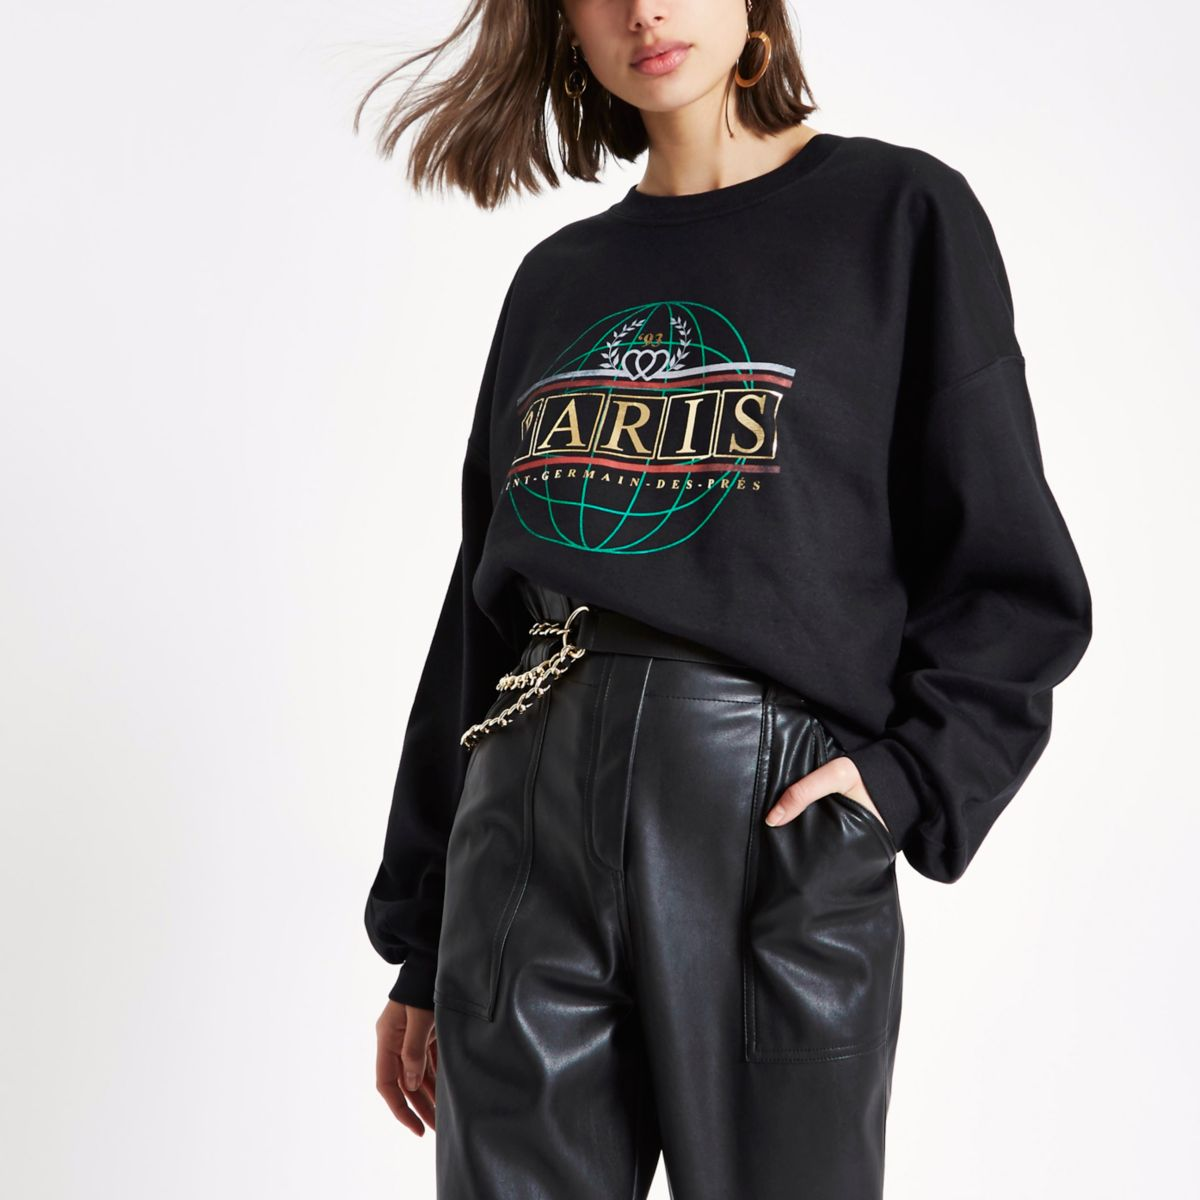 Black 'Paris' foil print sweatshirt